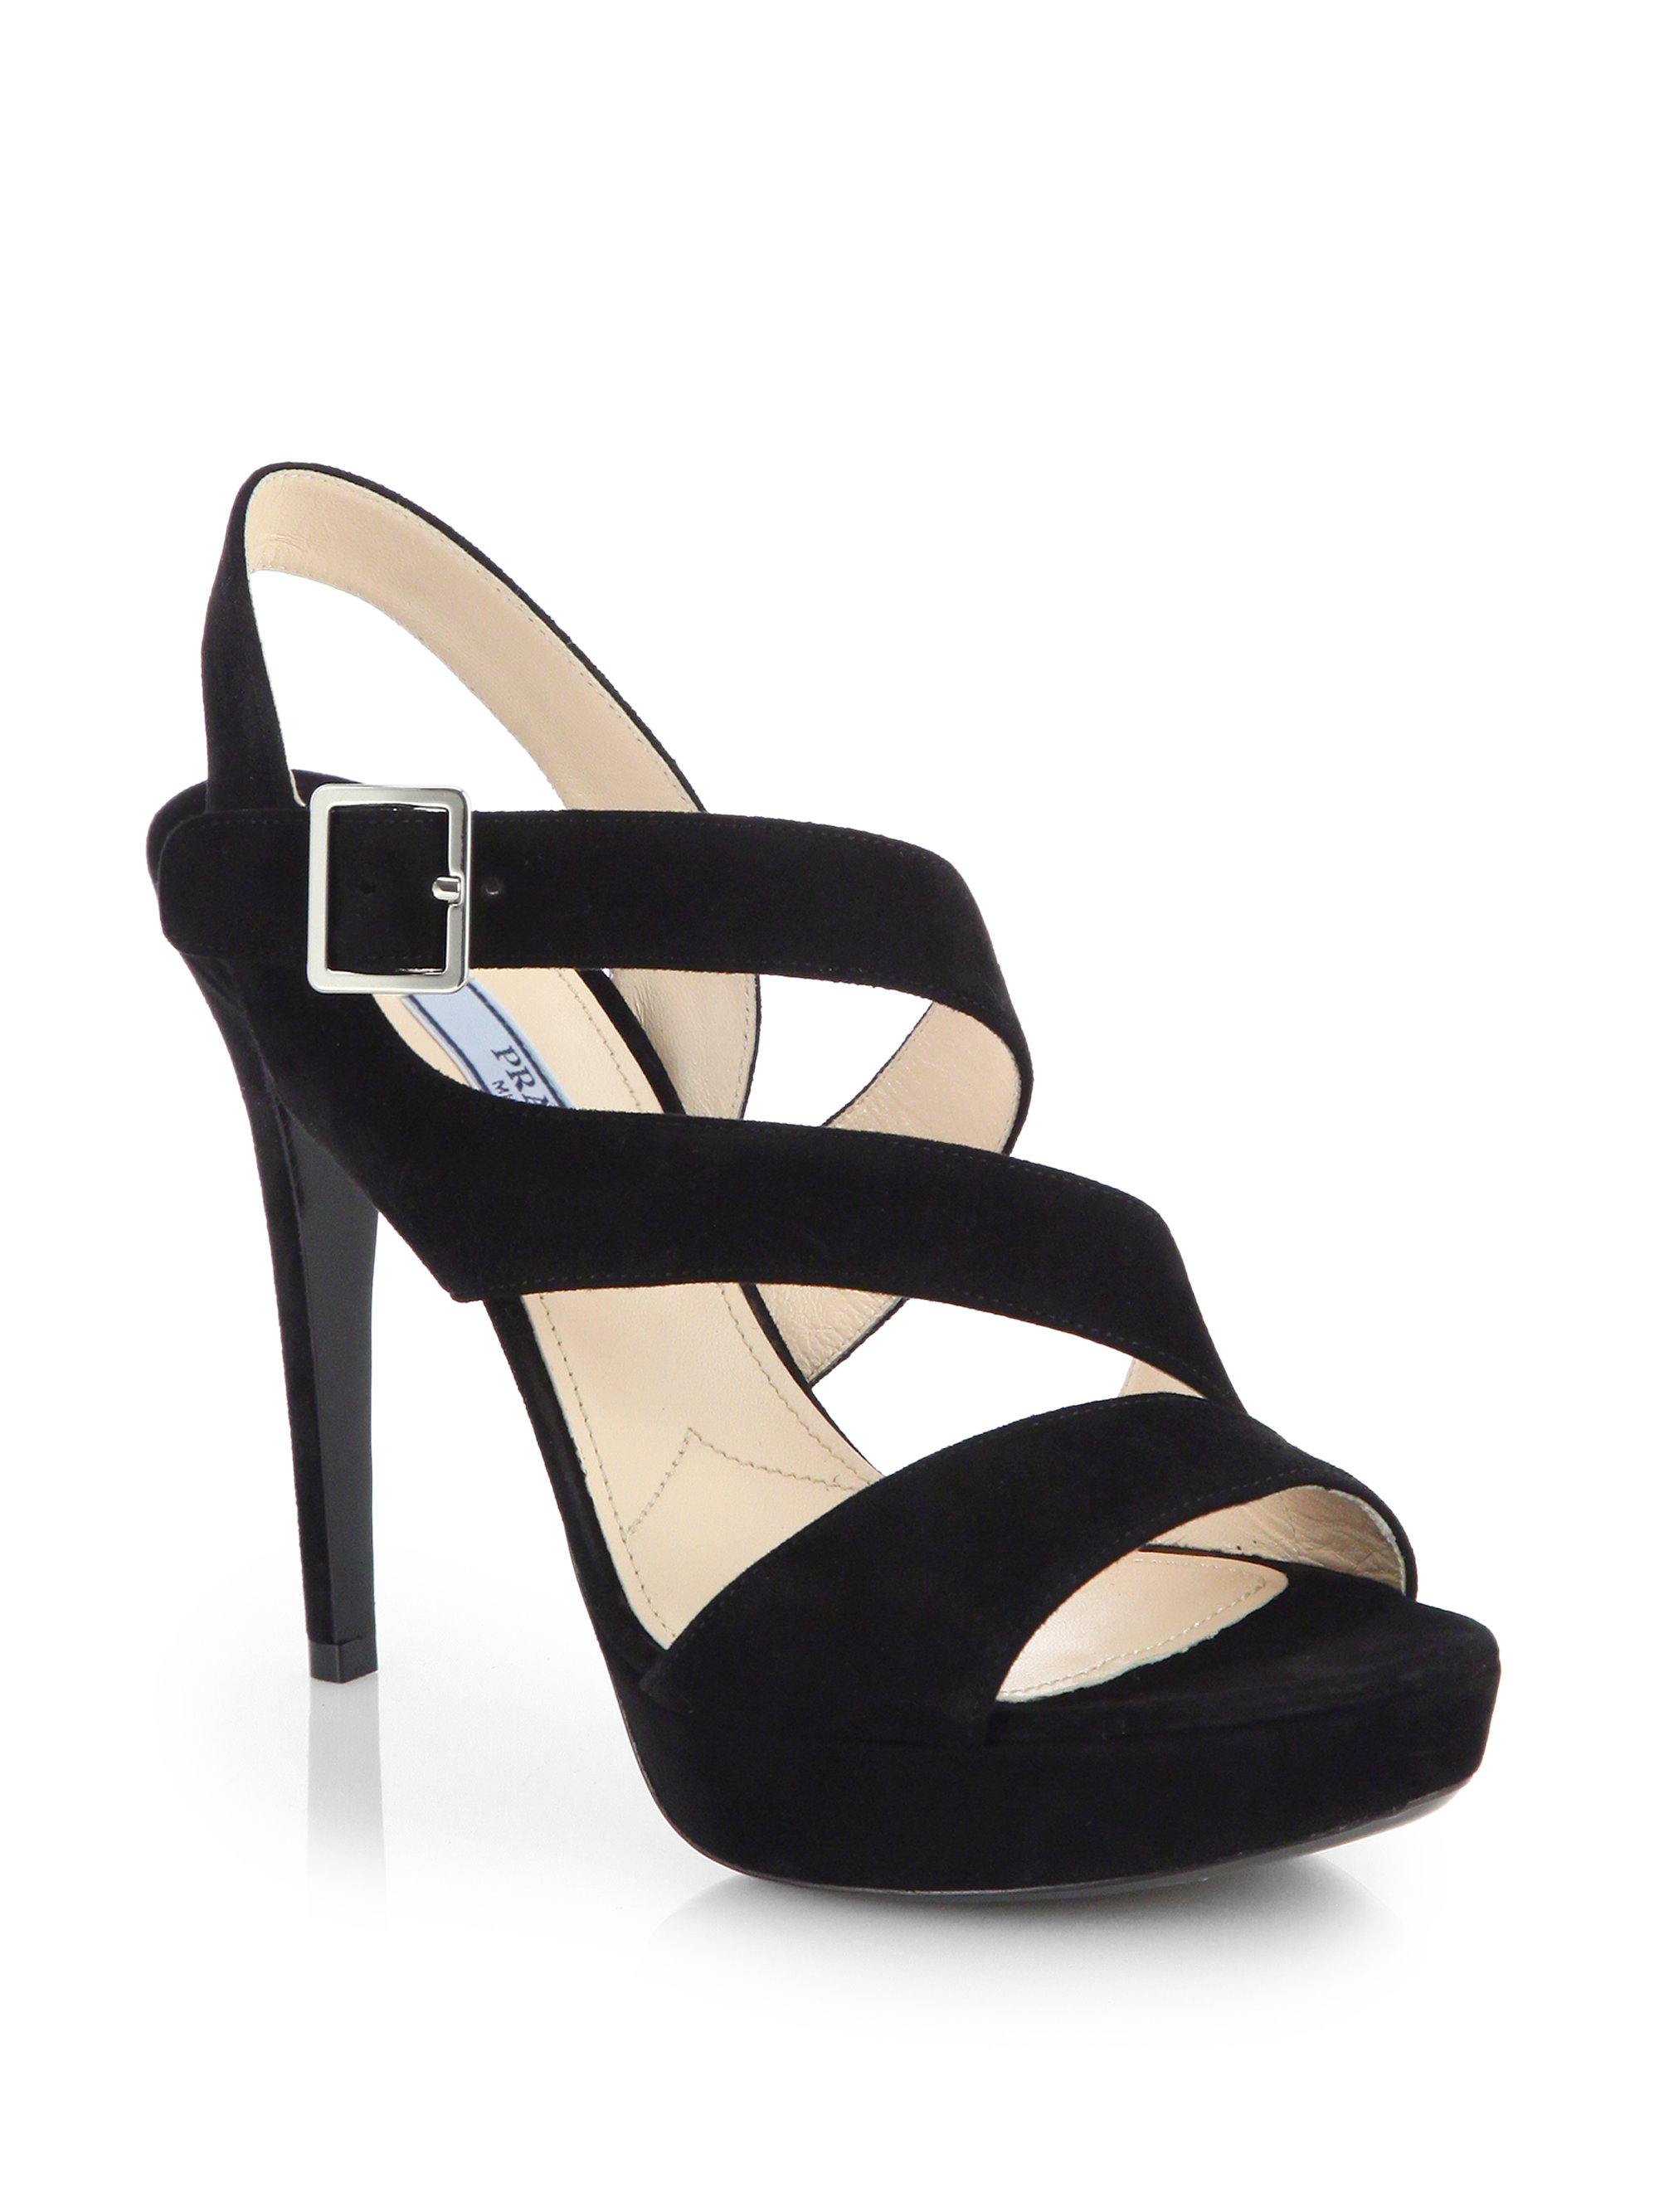 c871ff9b17f Lyst - Prada Strappy Suede Platform Sandals in Black